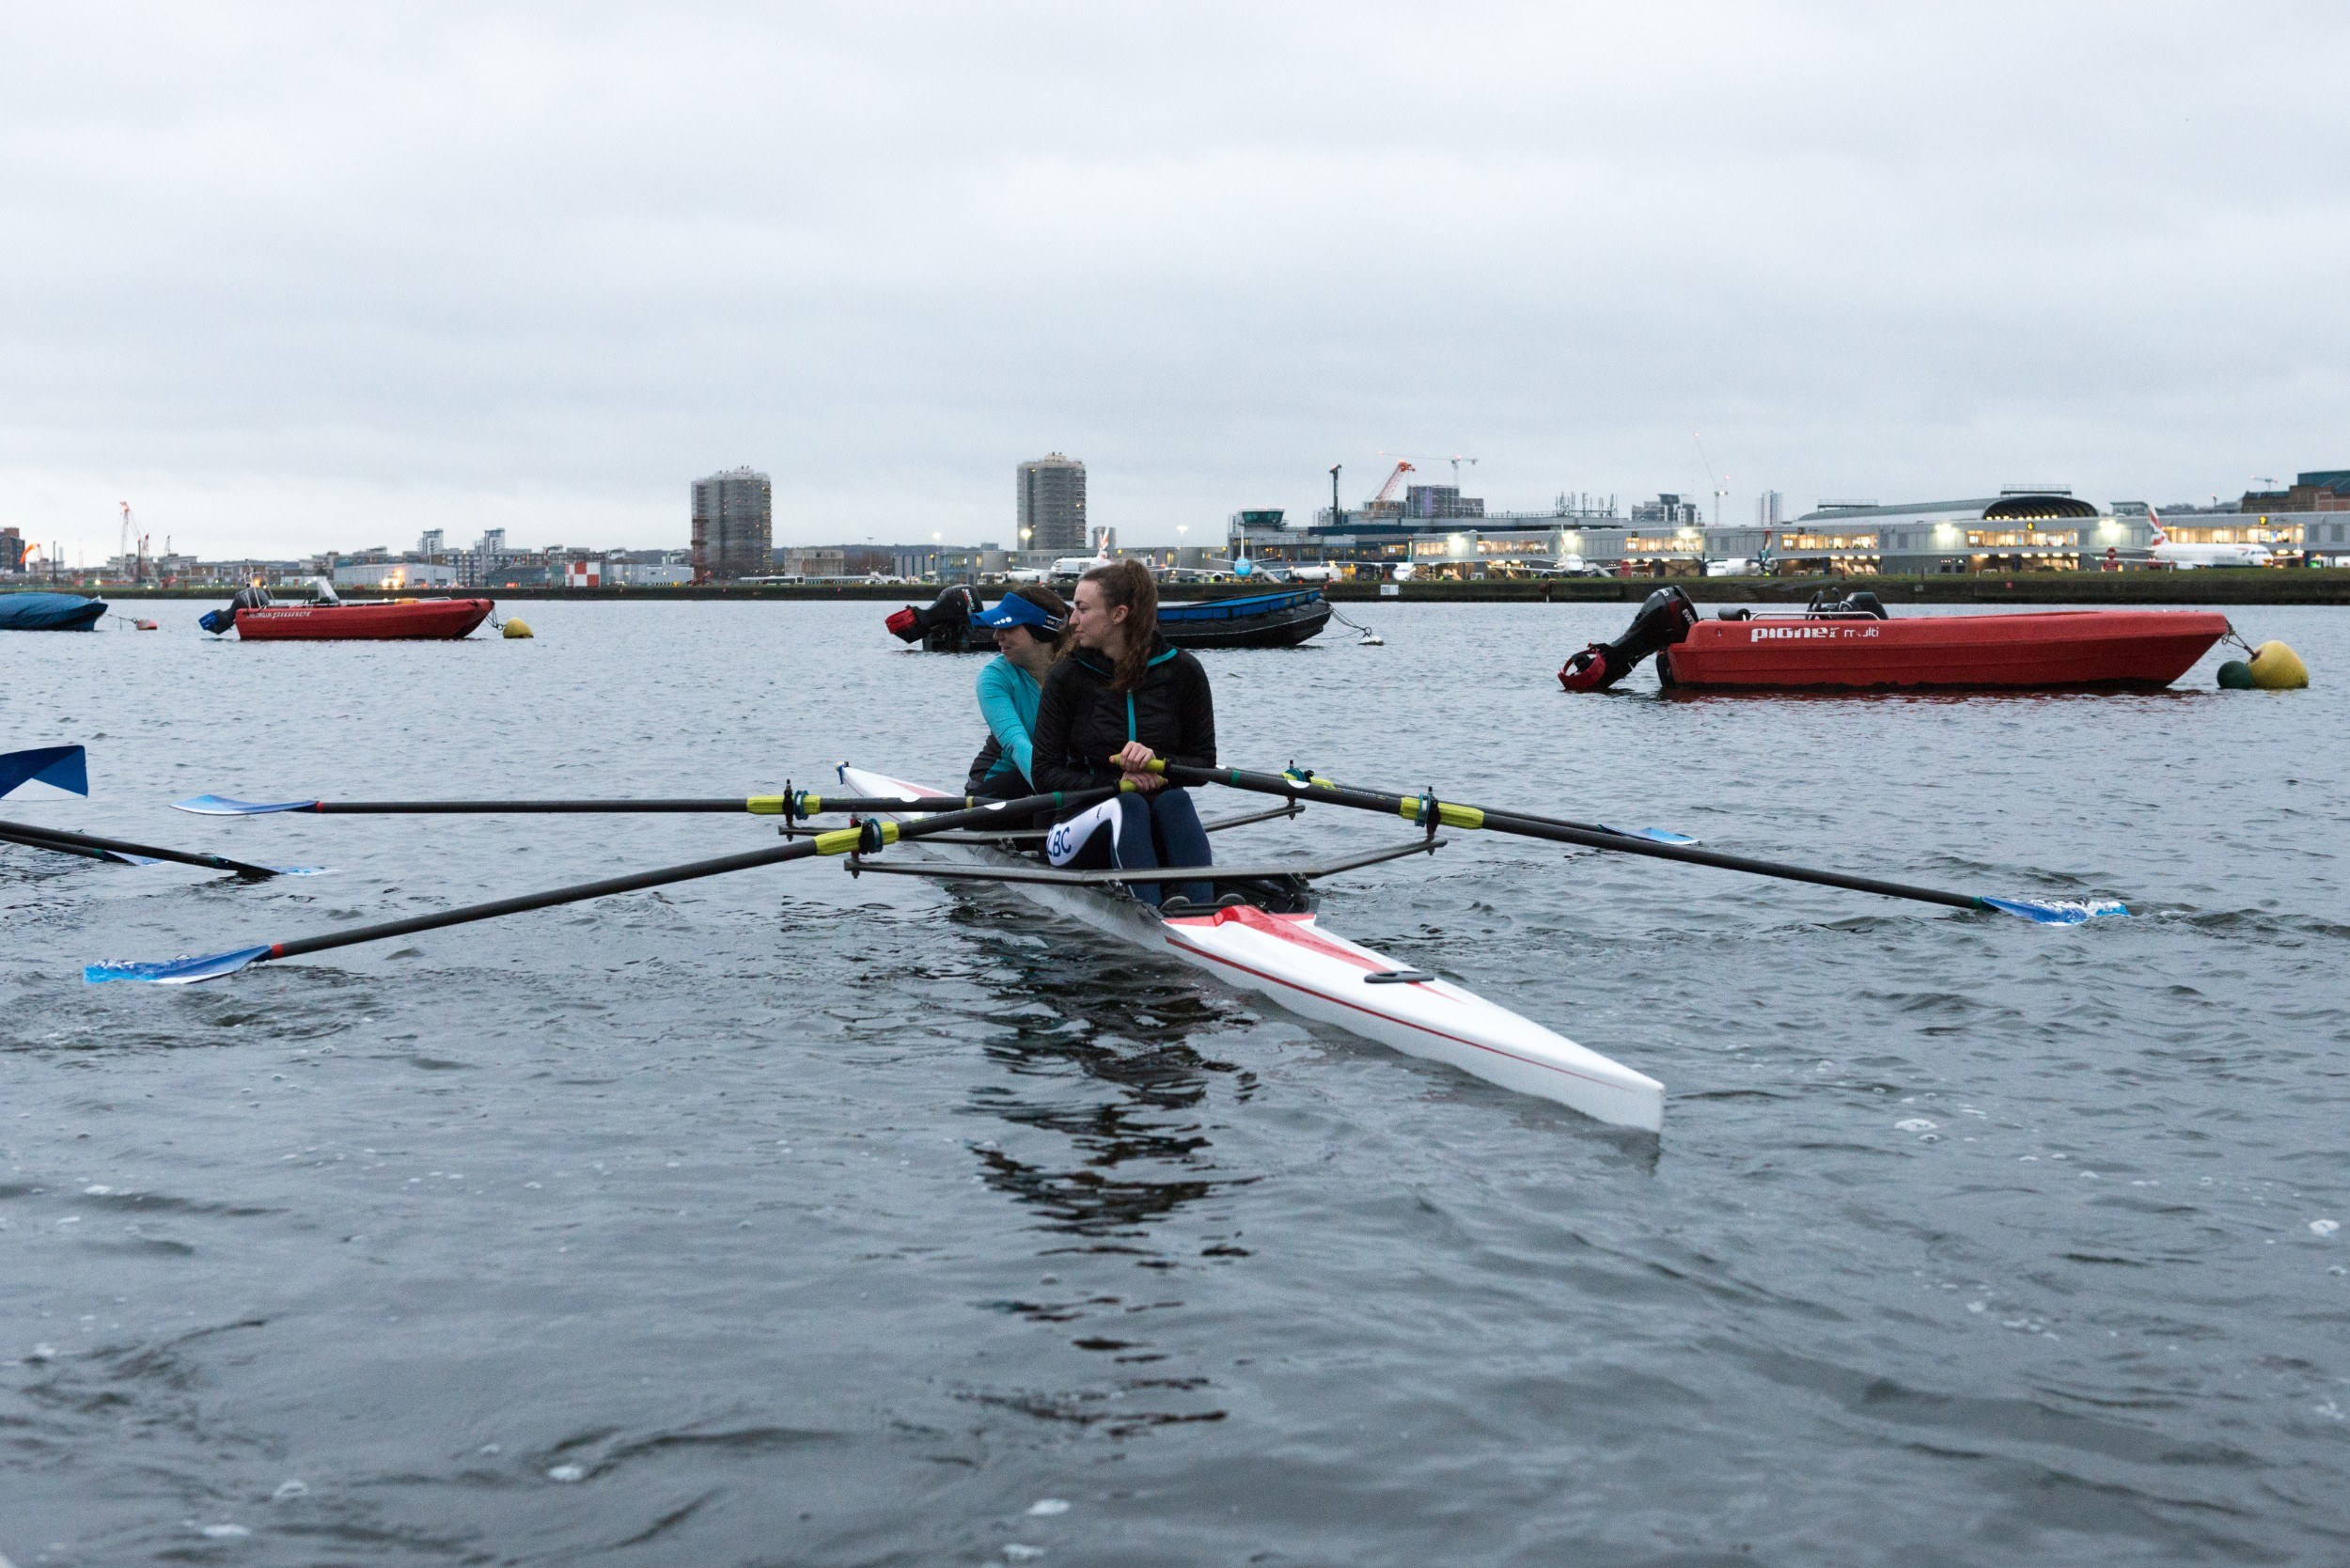 Two women rowing with other boats in the background